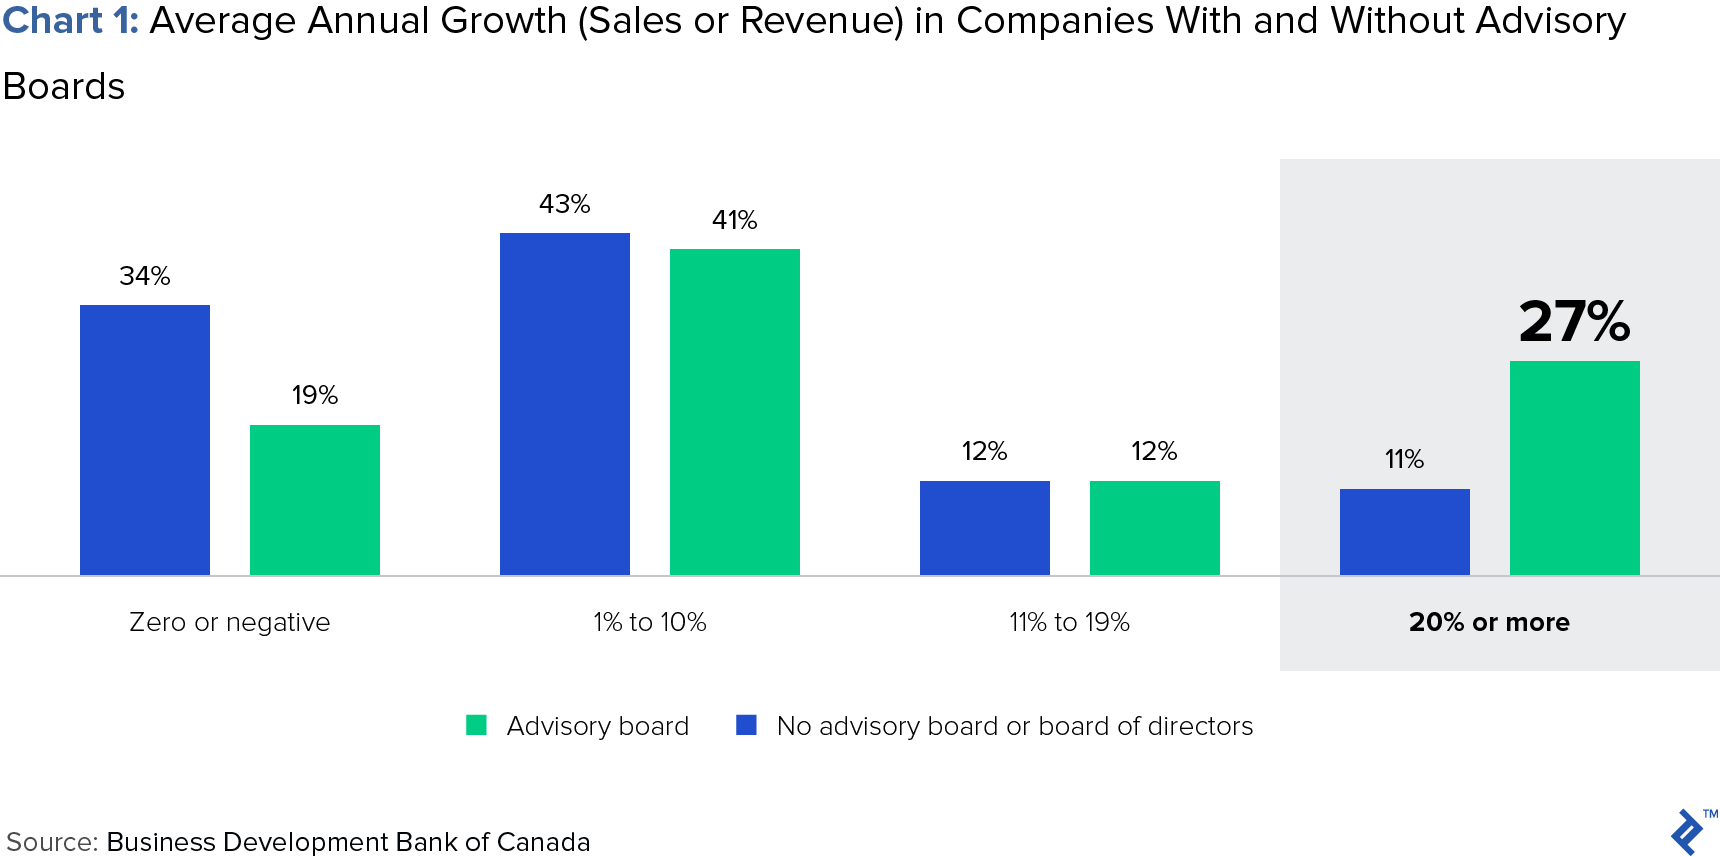 chart of average annual growth (sales or revenue) in companies with or without advisory boards